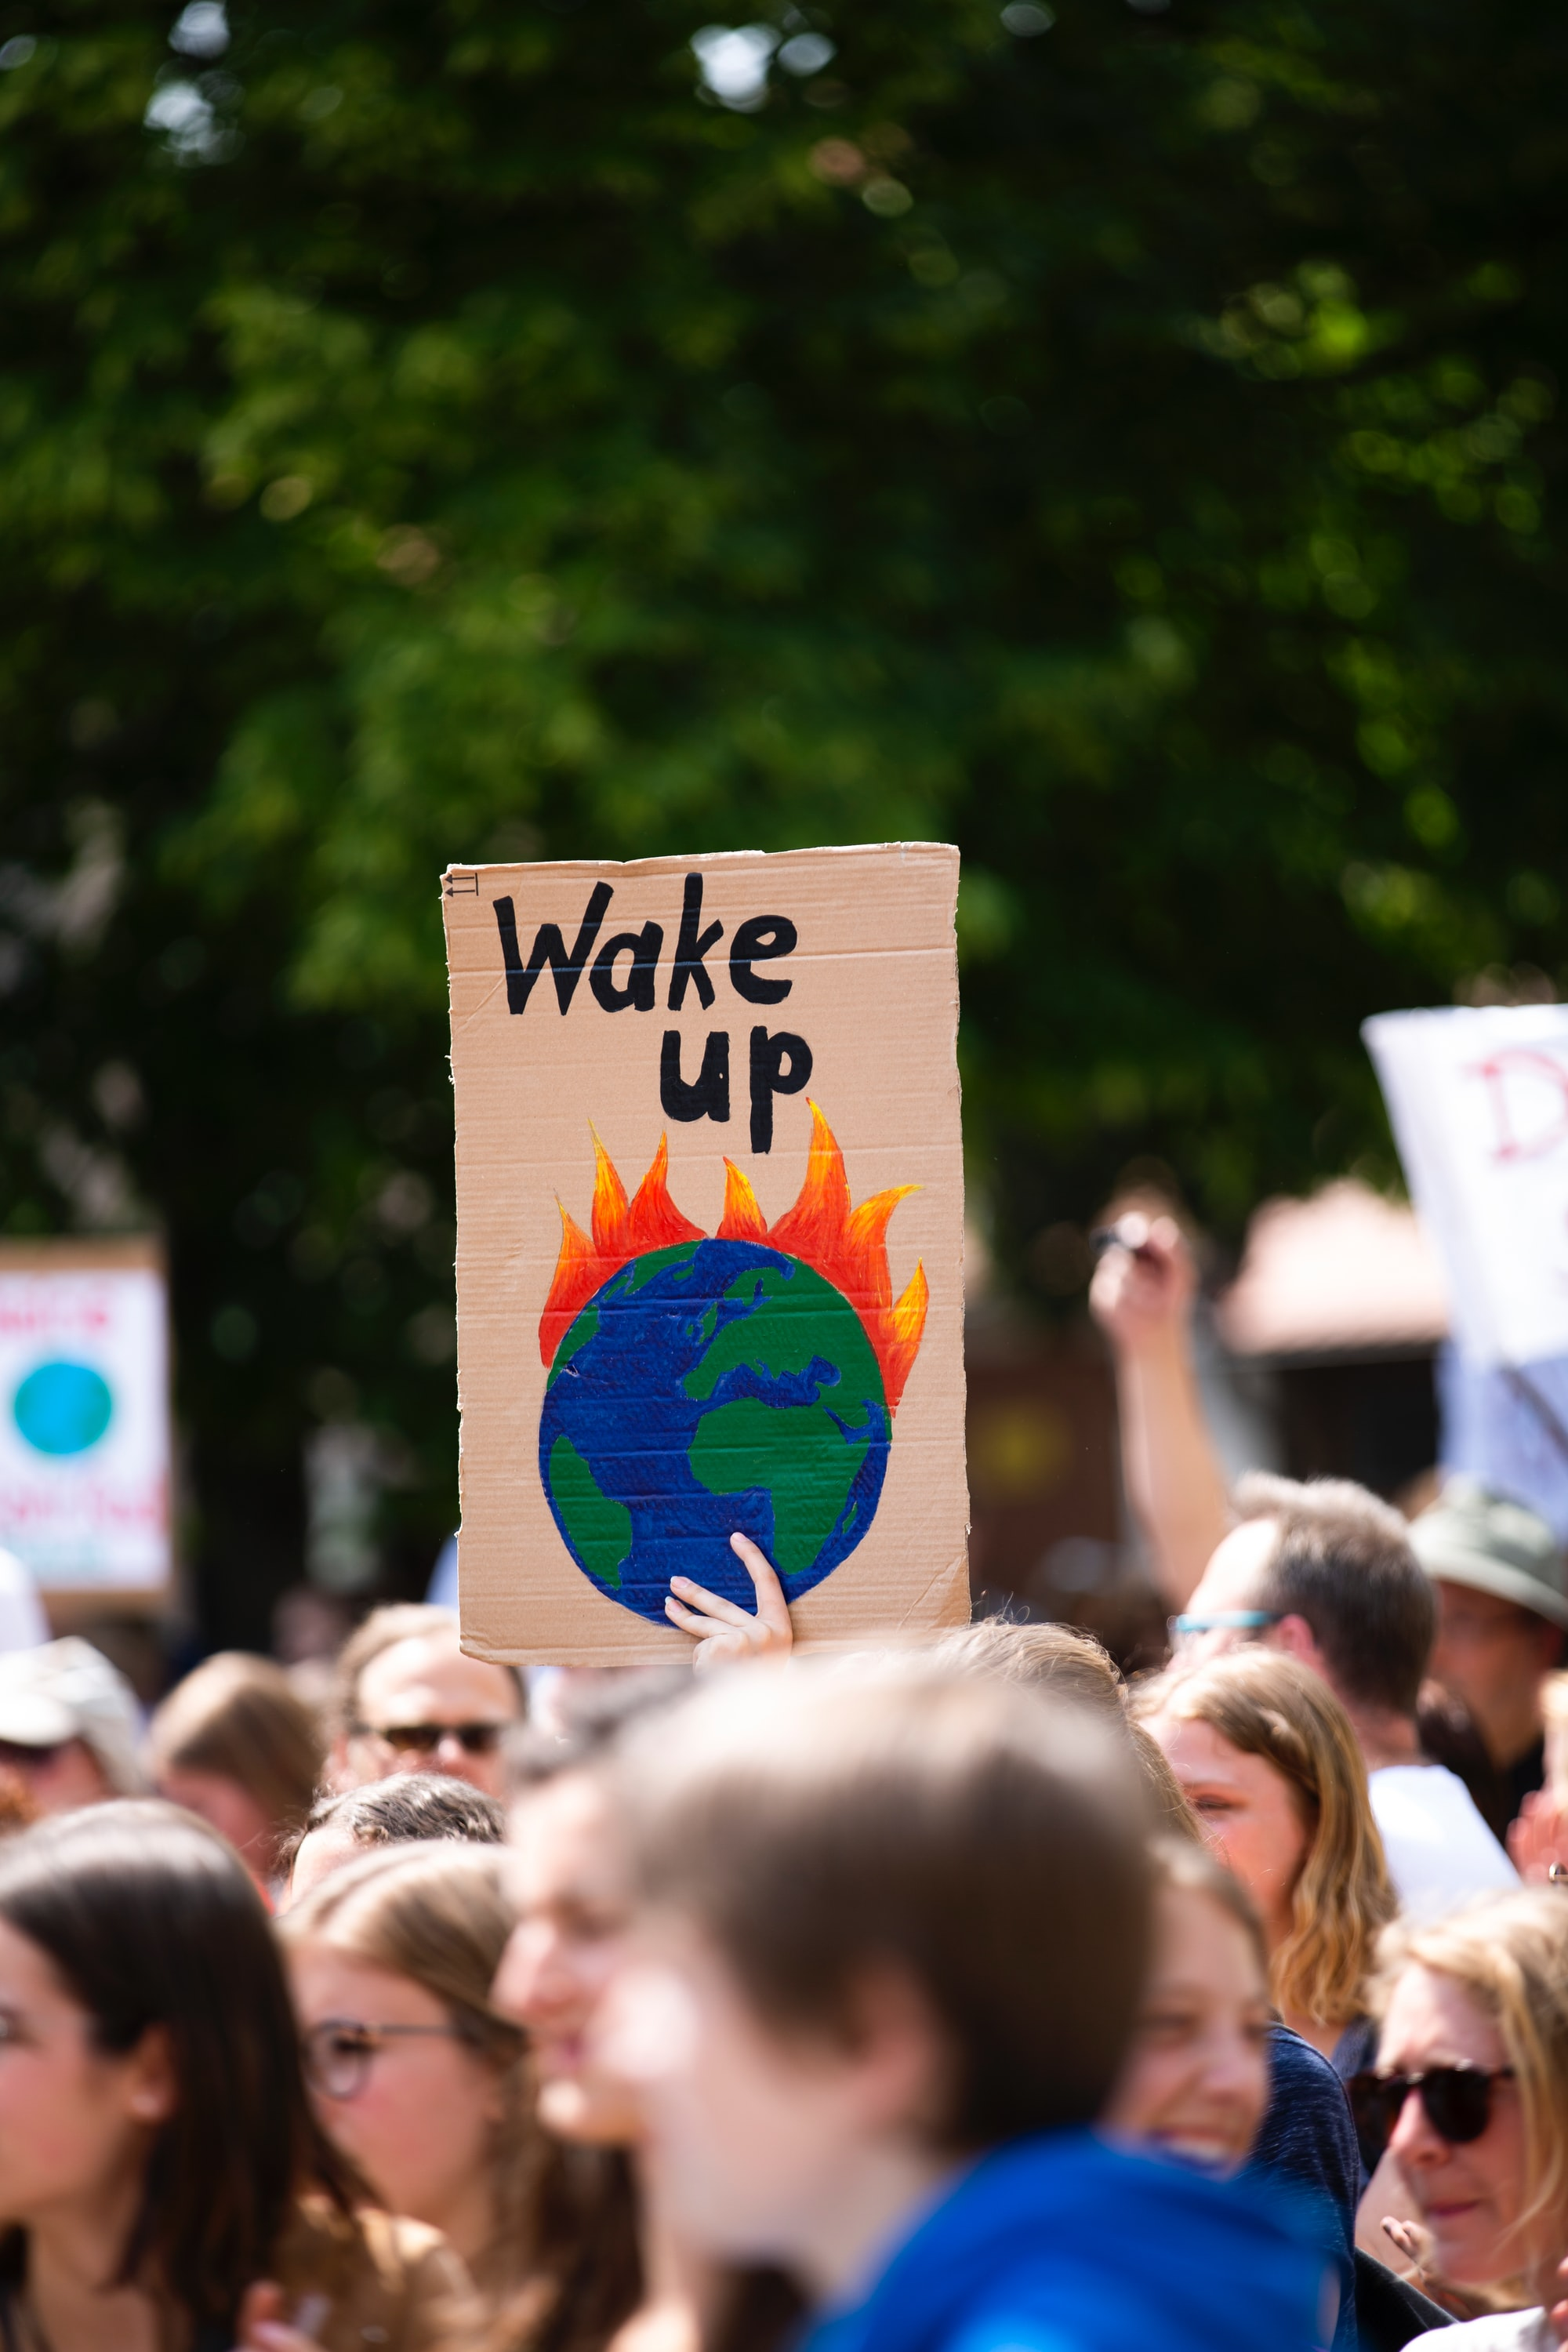 Fridays for future - global climate strike on the European elections (May 24 2019)